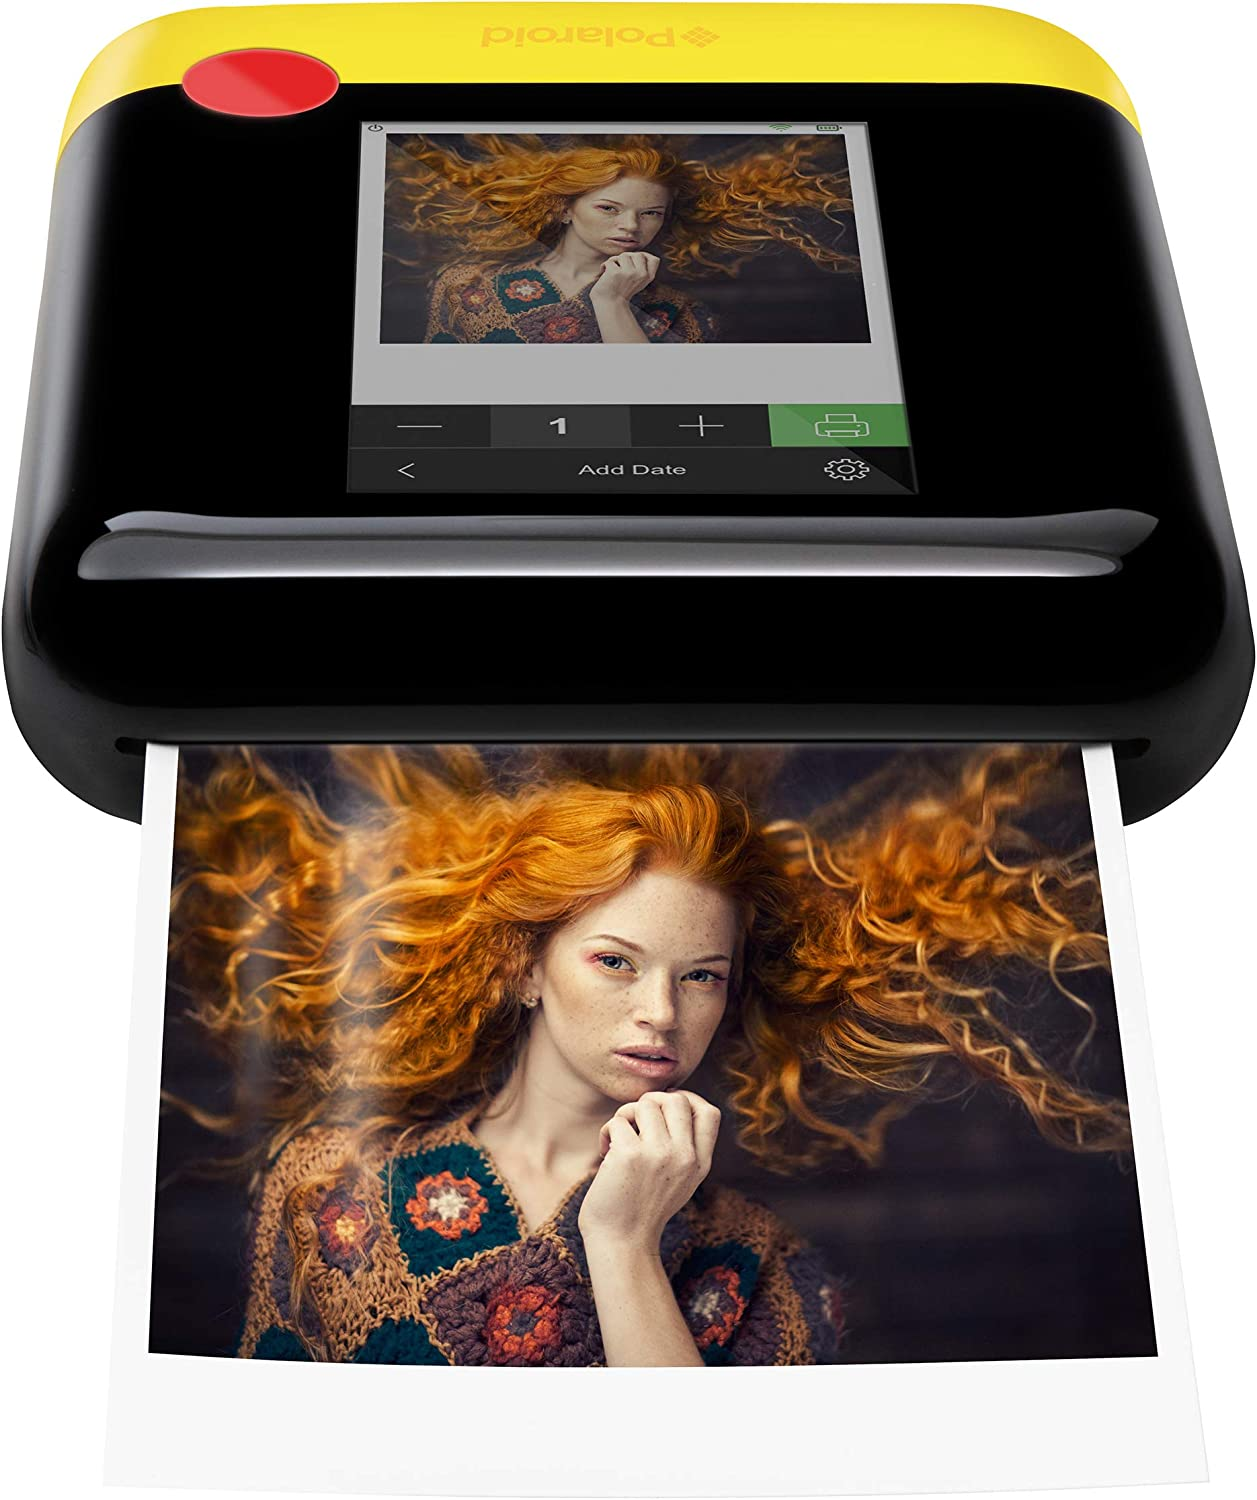 Zink Polaroid WiFi Wireless 3x4 Portable Mobile Photo Printer (Yellow) with LCD Touch Screen, Compatible w/ iOS & Android